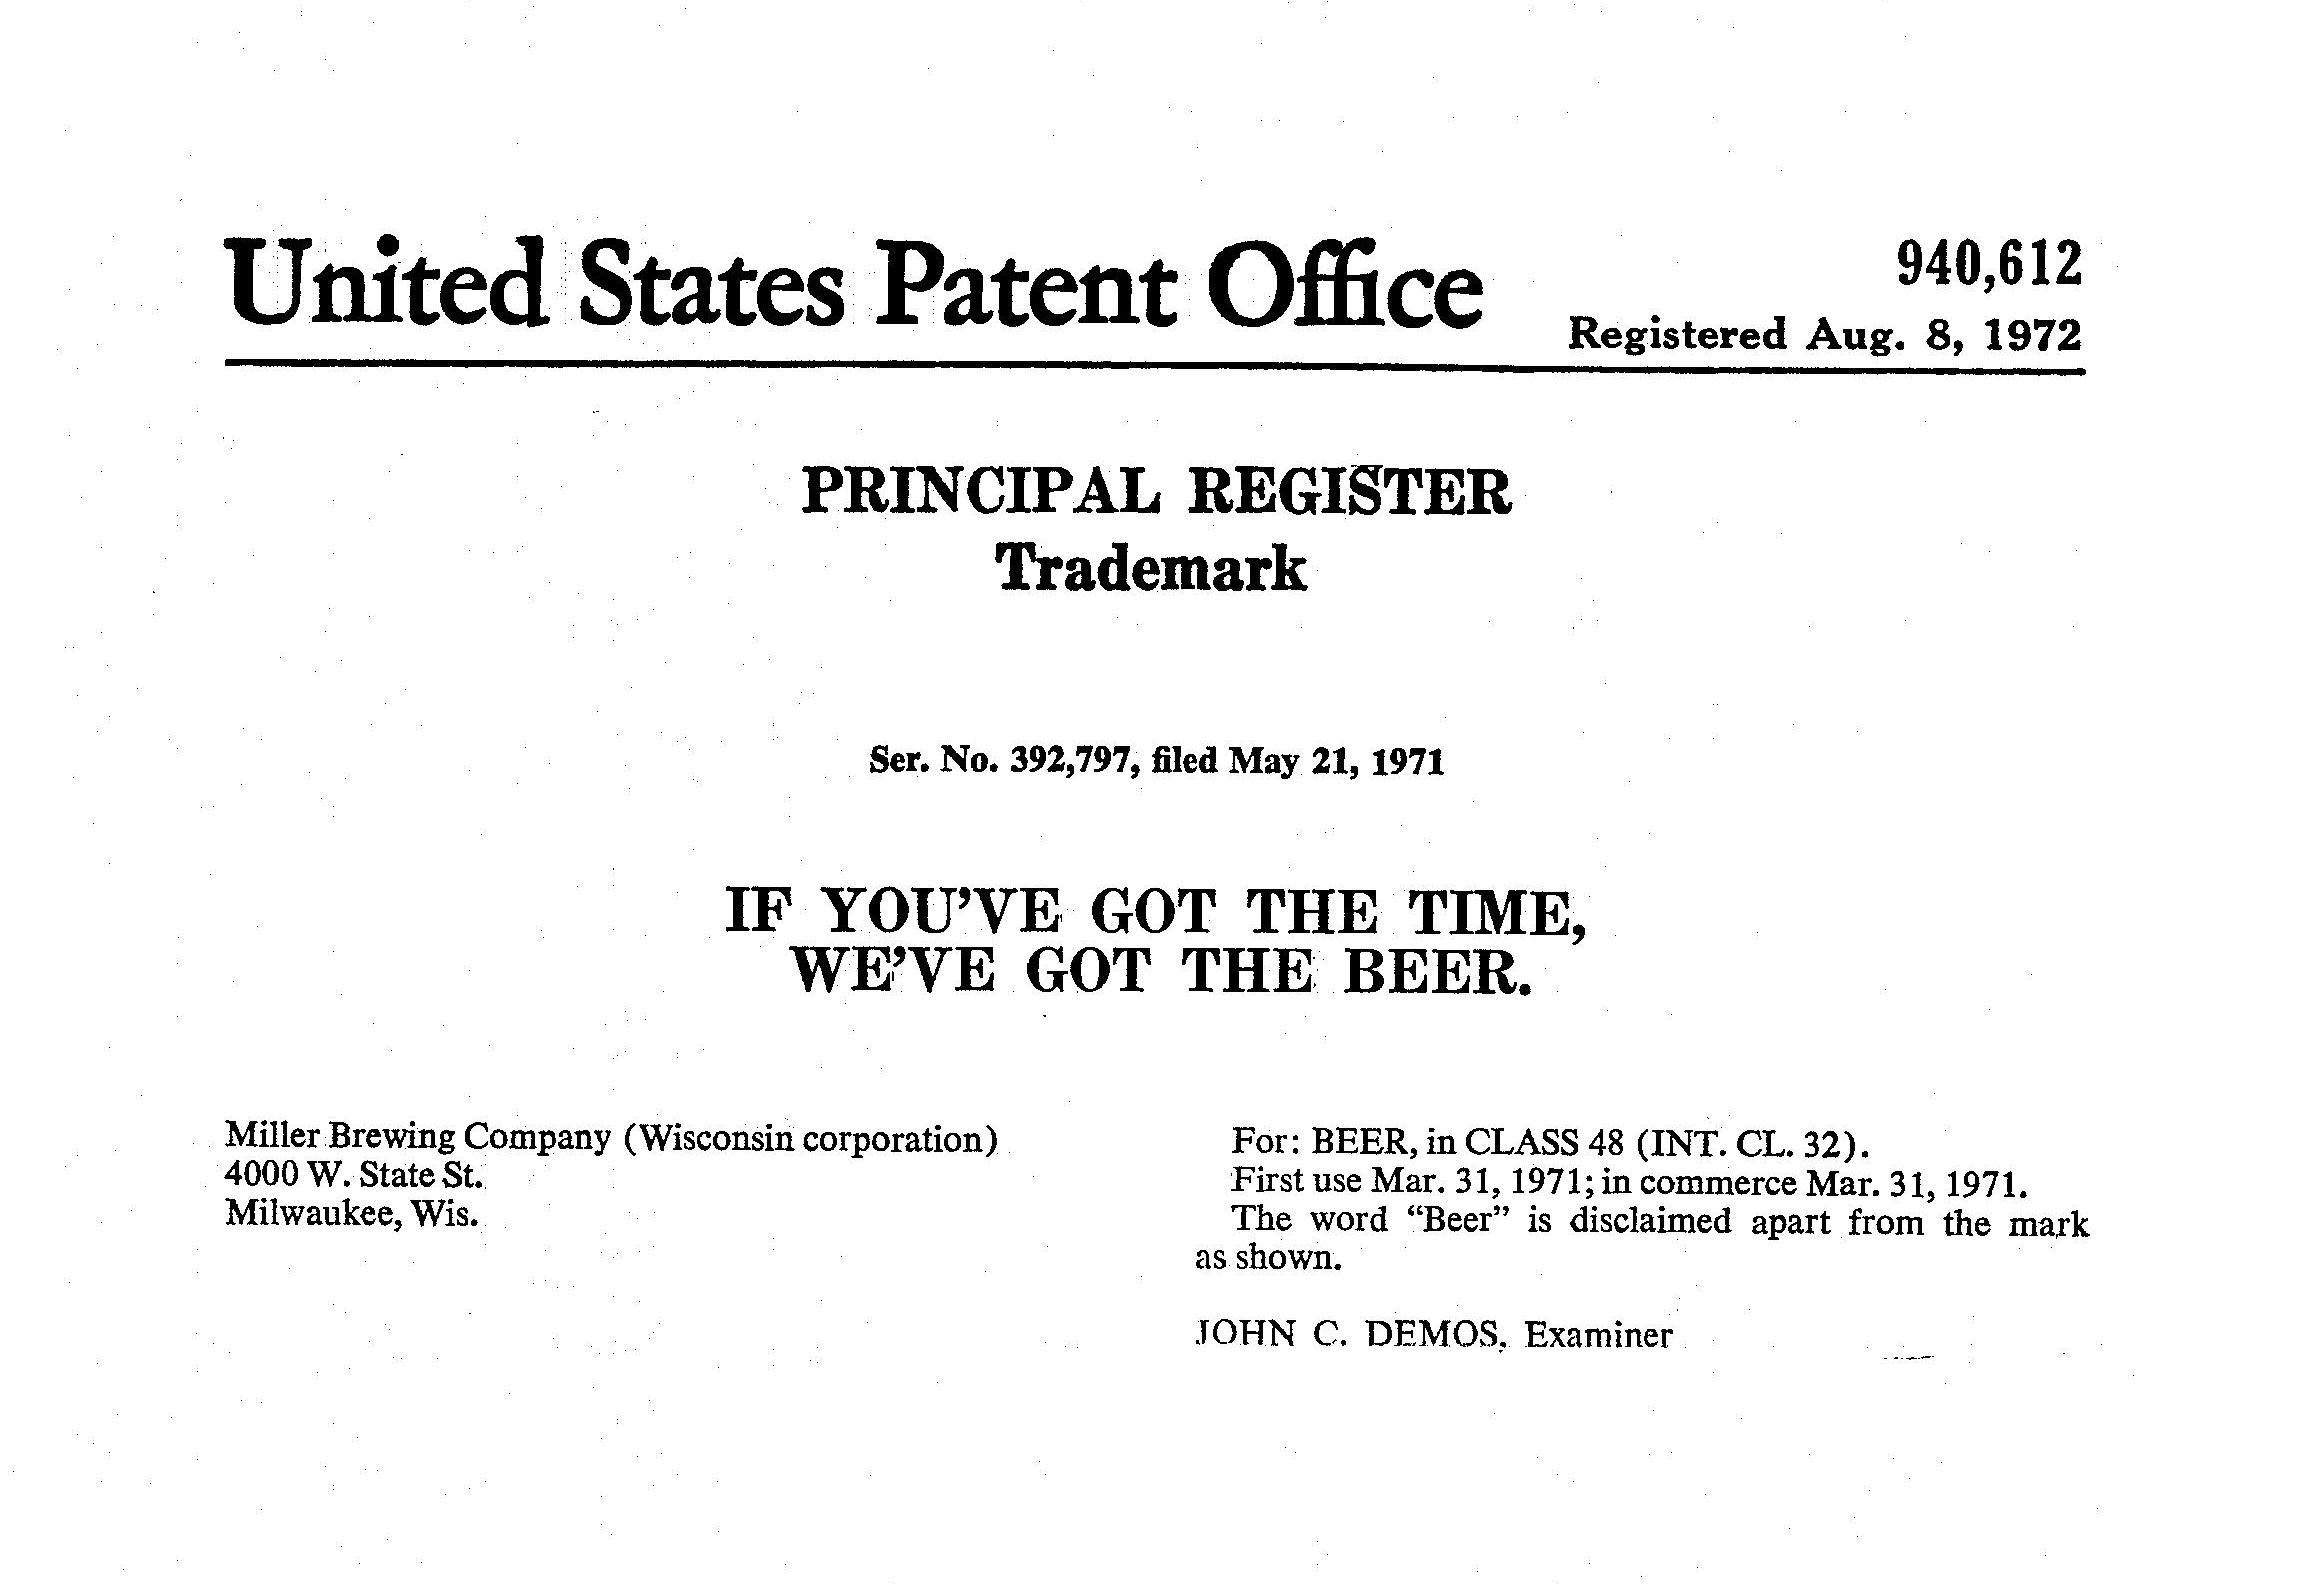 United States Patent Office Principal Register